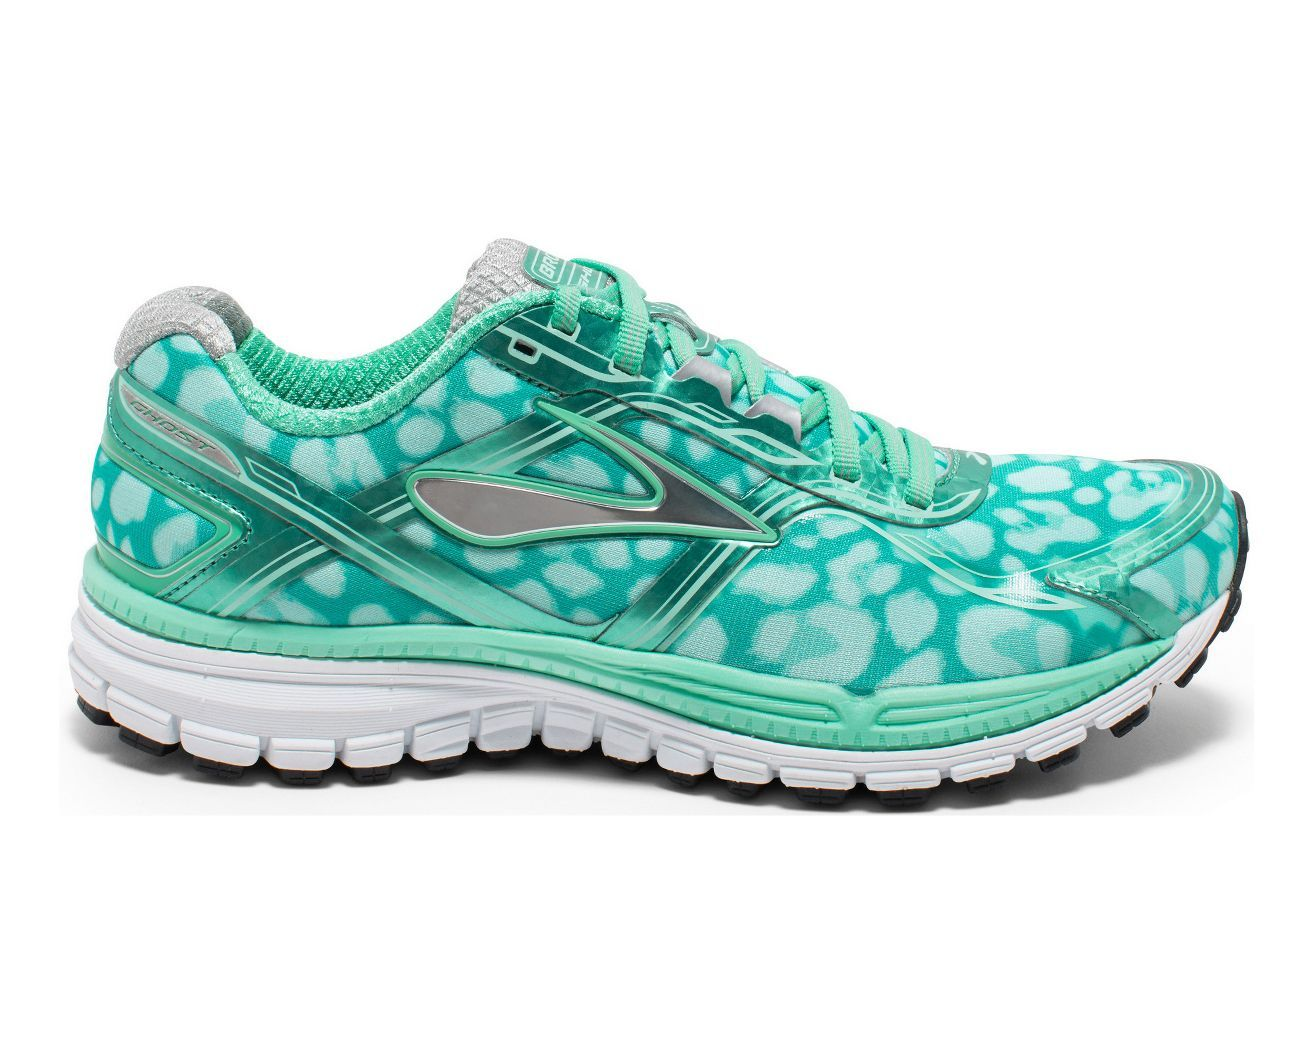 low priced 1de7c f7ffa Womens Brooks Ghost 8 Urban Jungle Running Shoe at Road Runner Sports